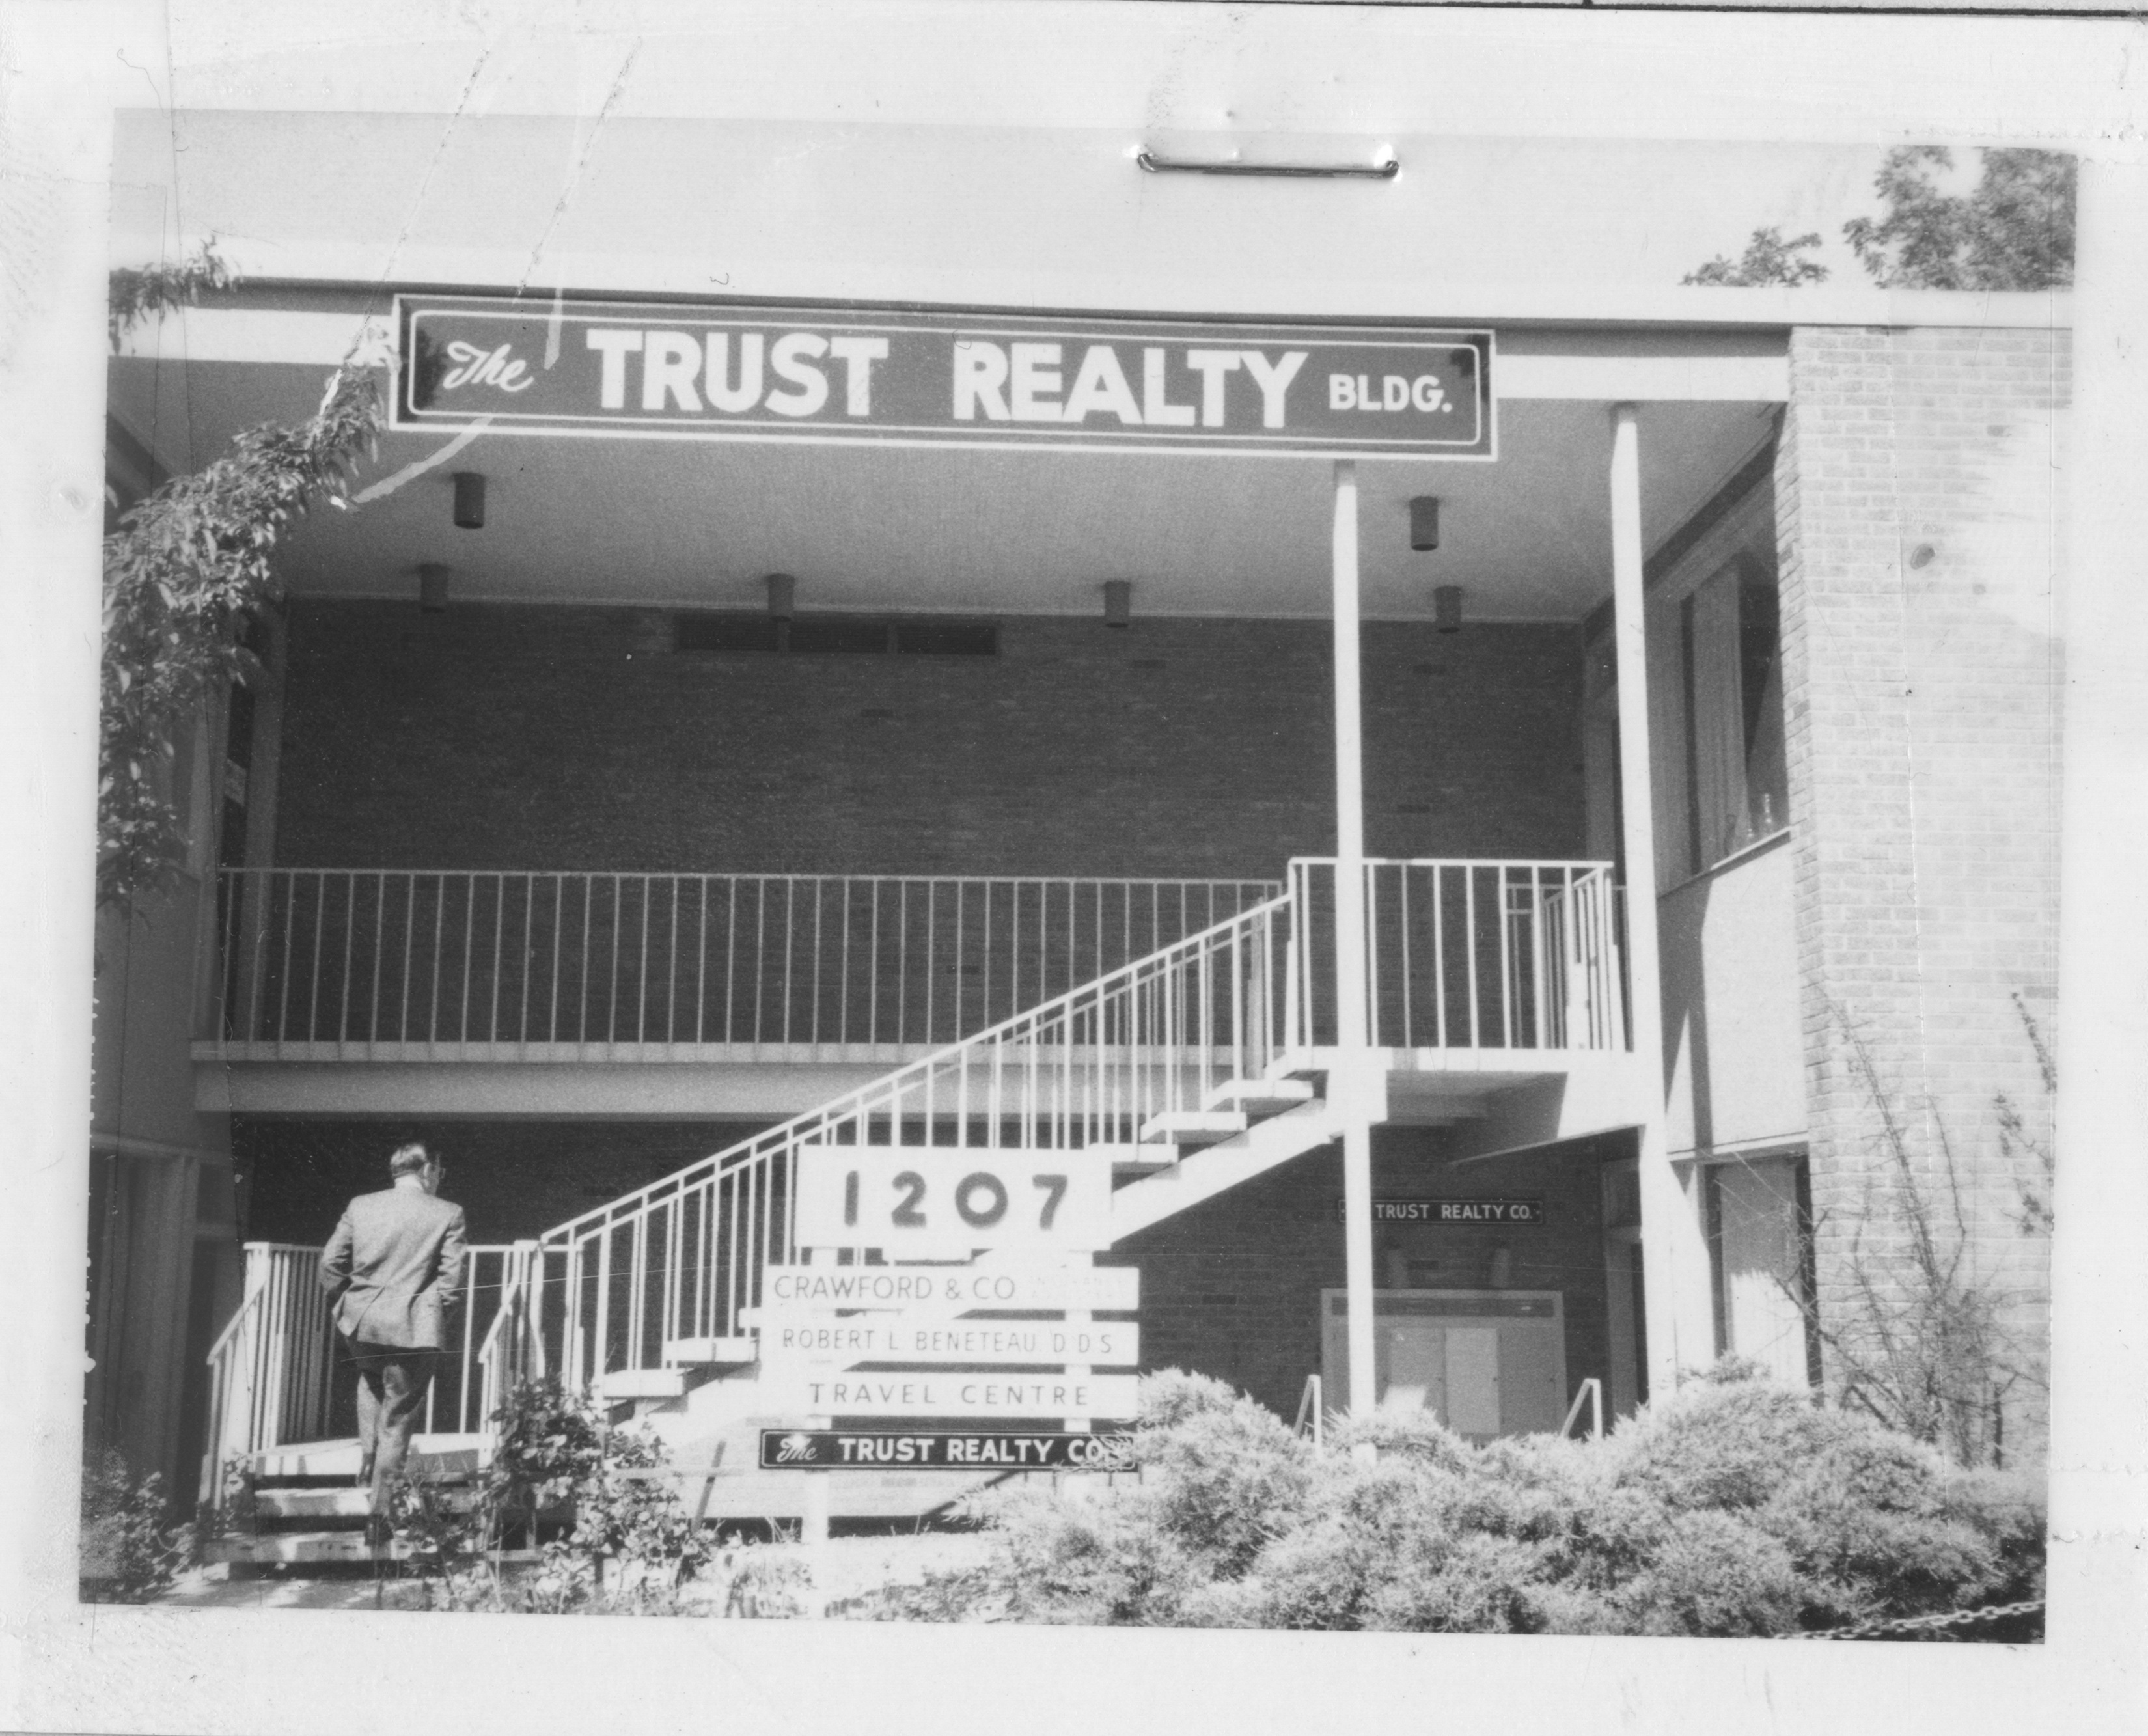 The Trust Realty Building, 1972 image